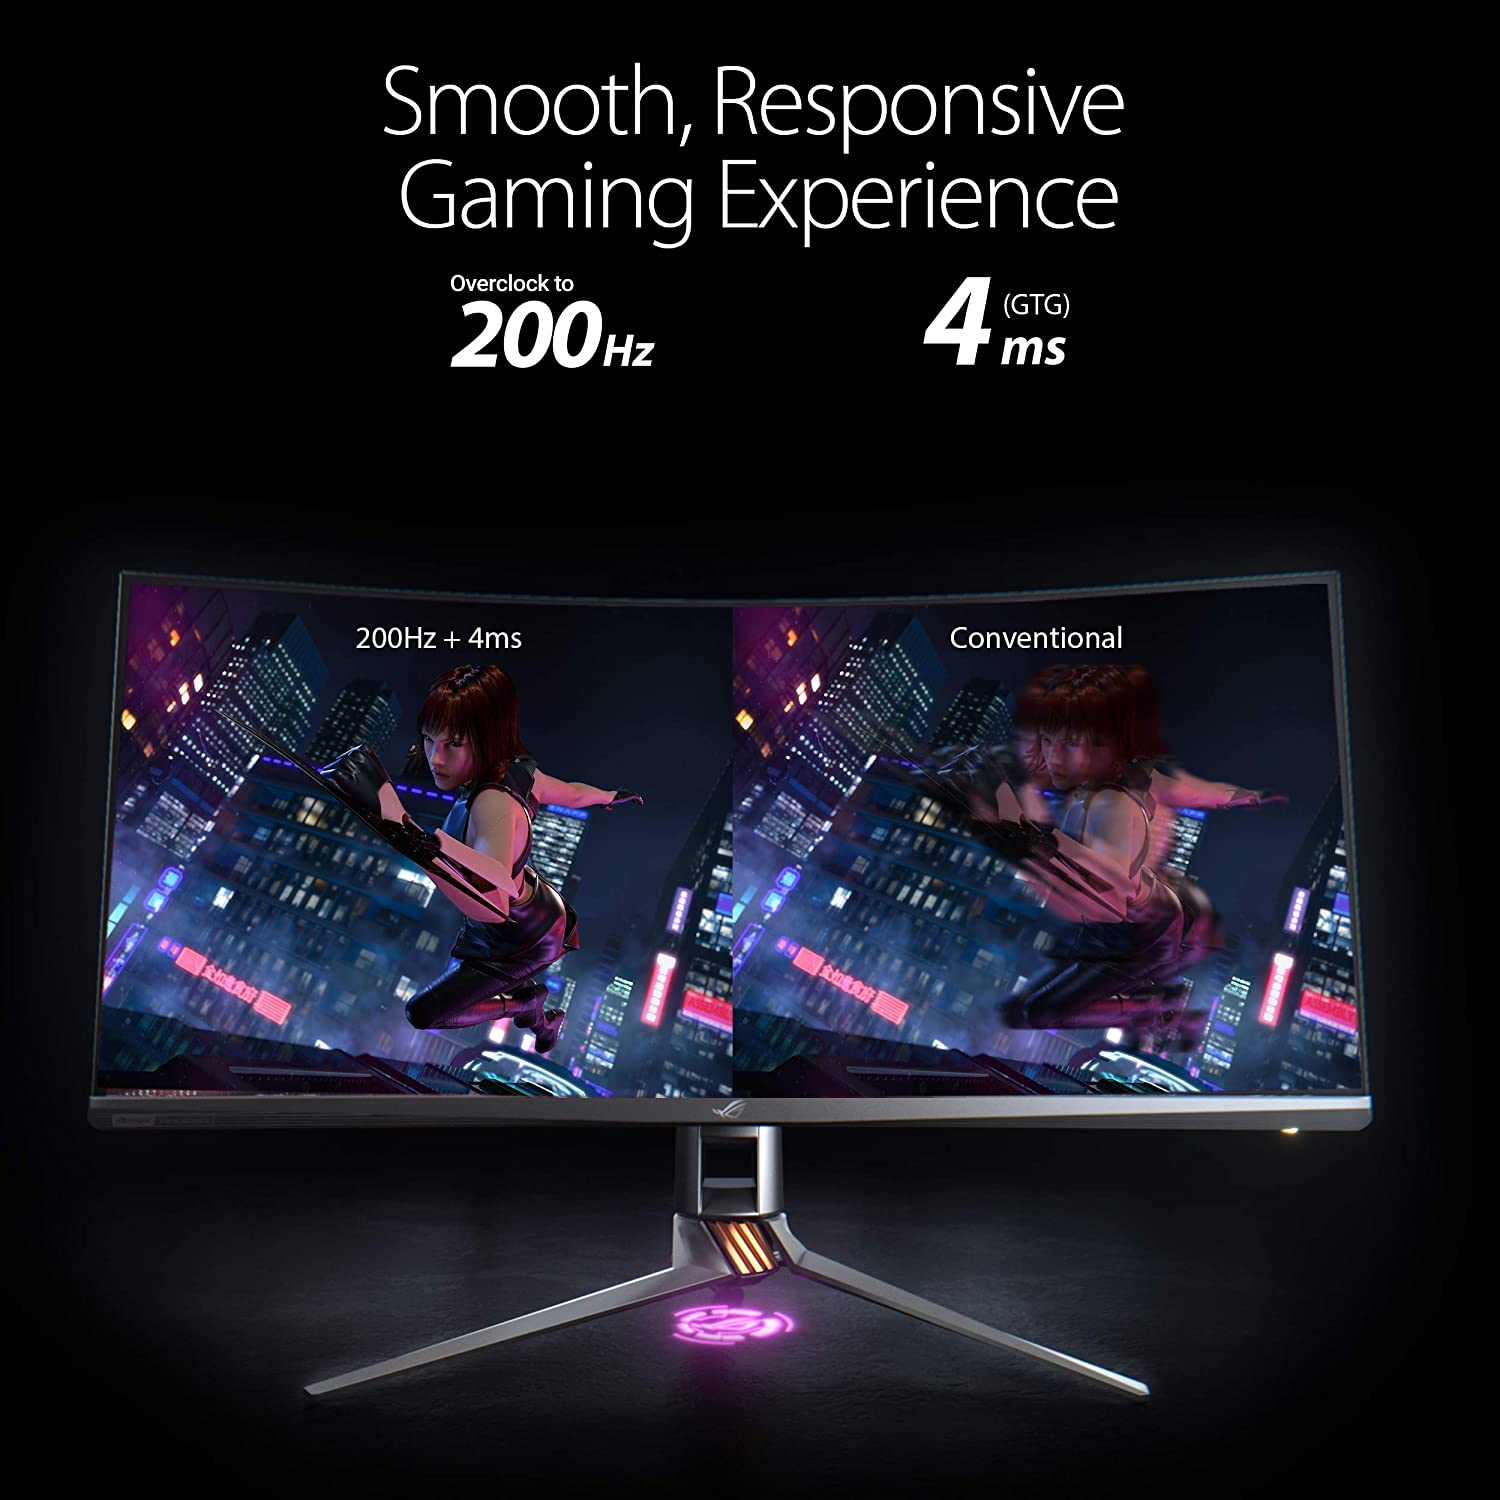 ASUS ROG Swift PG35VQ Ultra-Wide HDR Gaming Monitor, 35 Inch 21:9 (3440 x  1440), FALD 512 Zones, Overclockable 200 Hz, 2 ms, G-SYNC Ultimate, Display